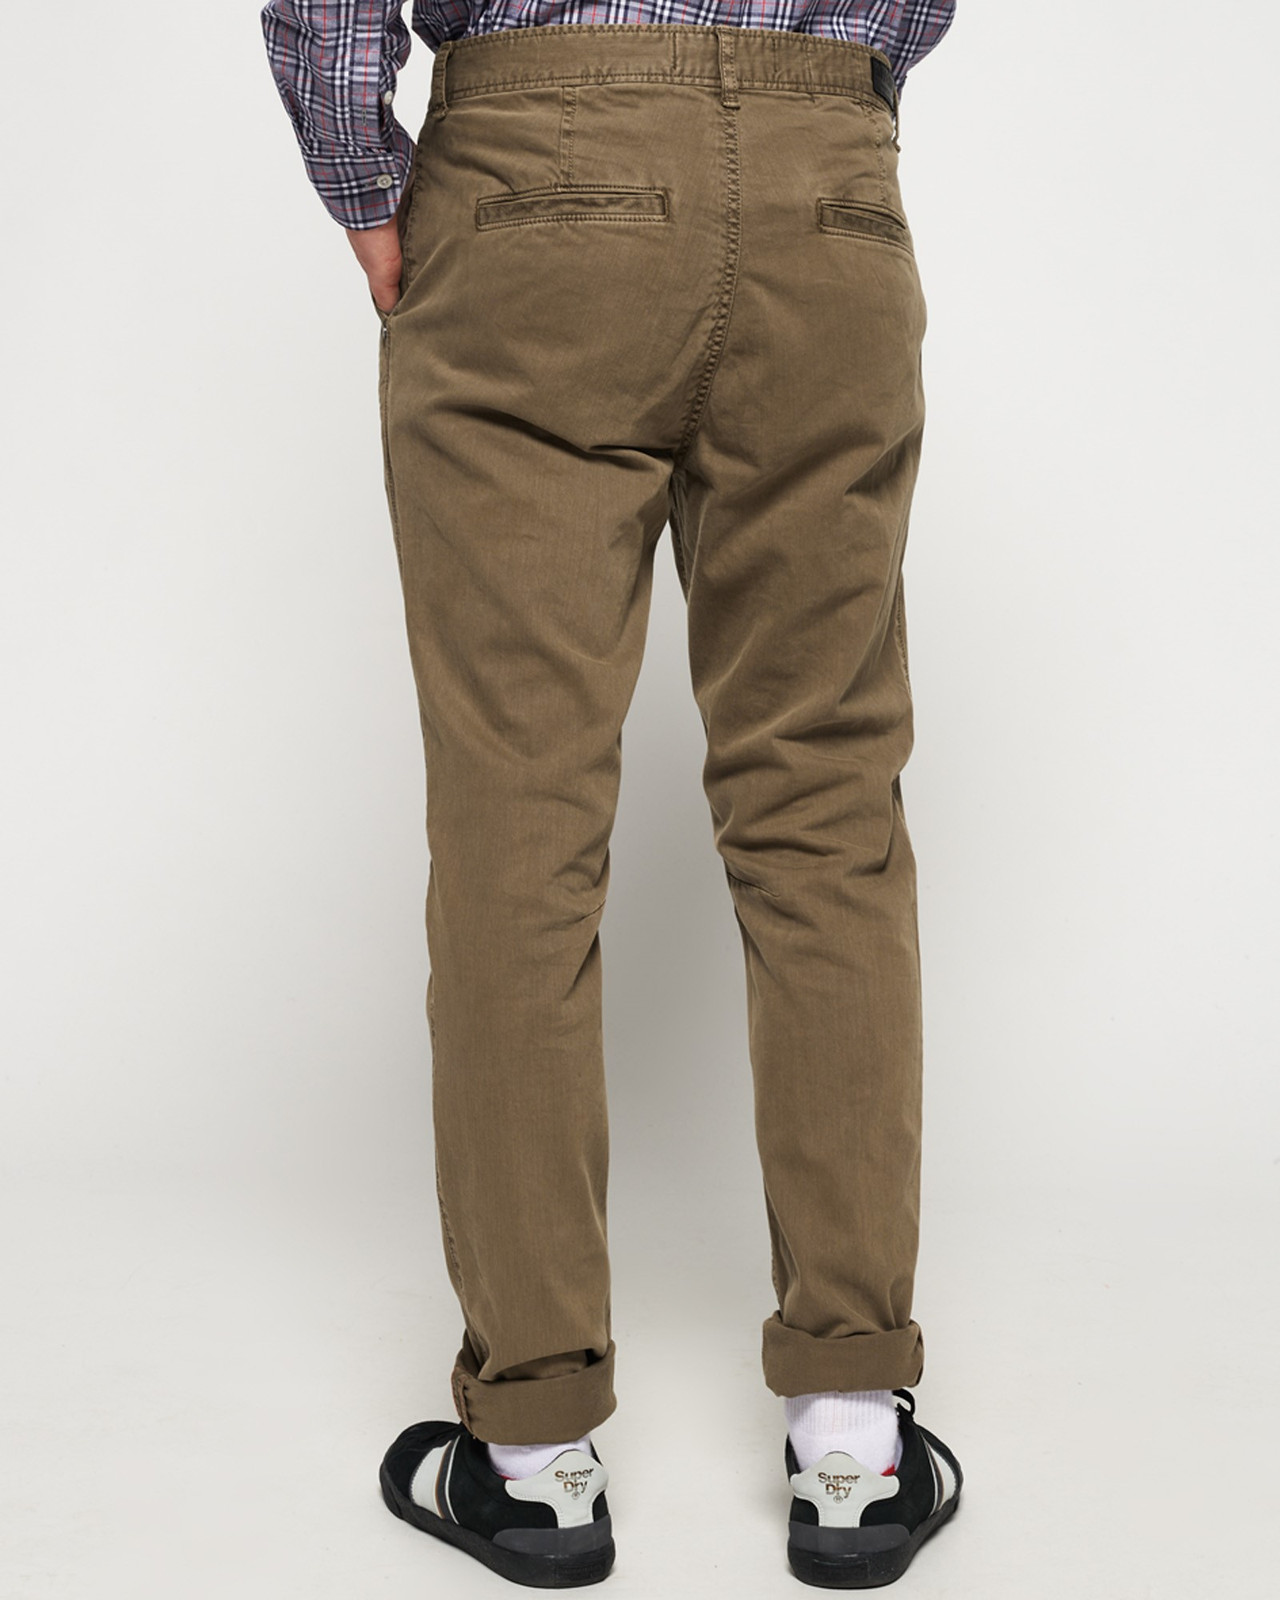 Superdry Mens Surplus Goods Chino Trousers Brown Chino Pants 2